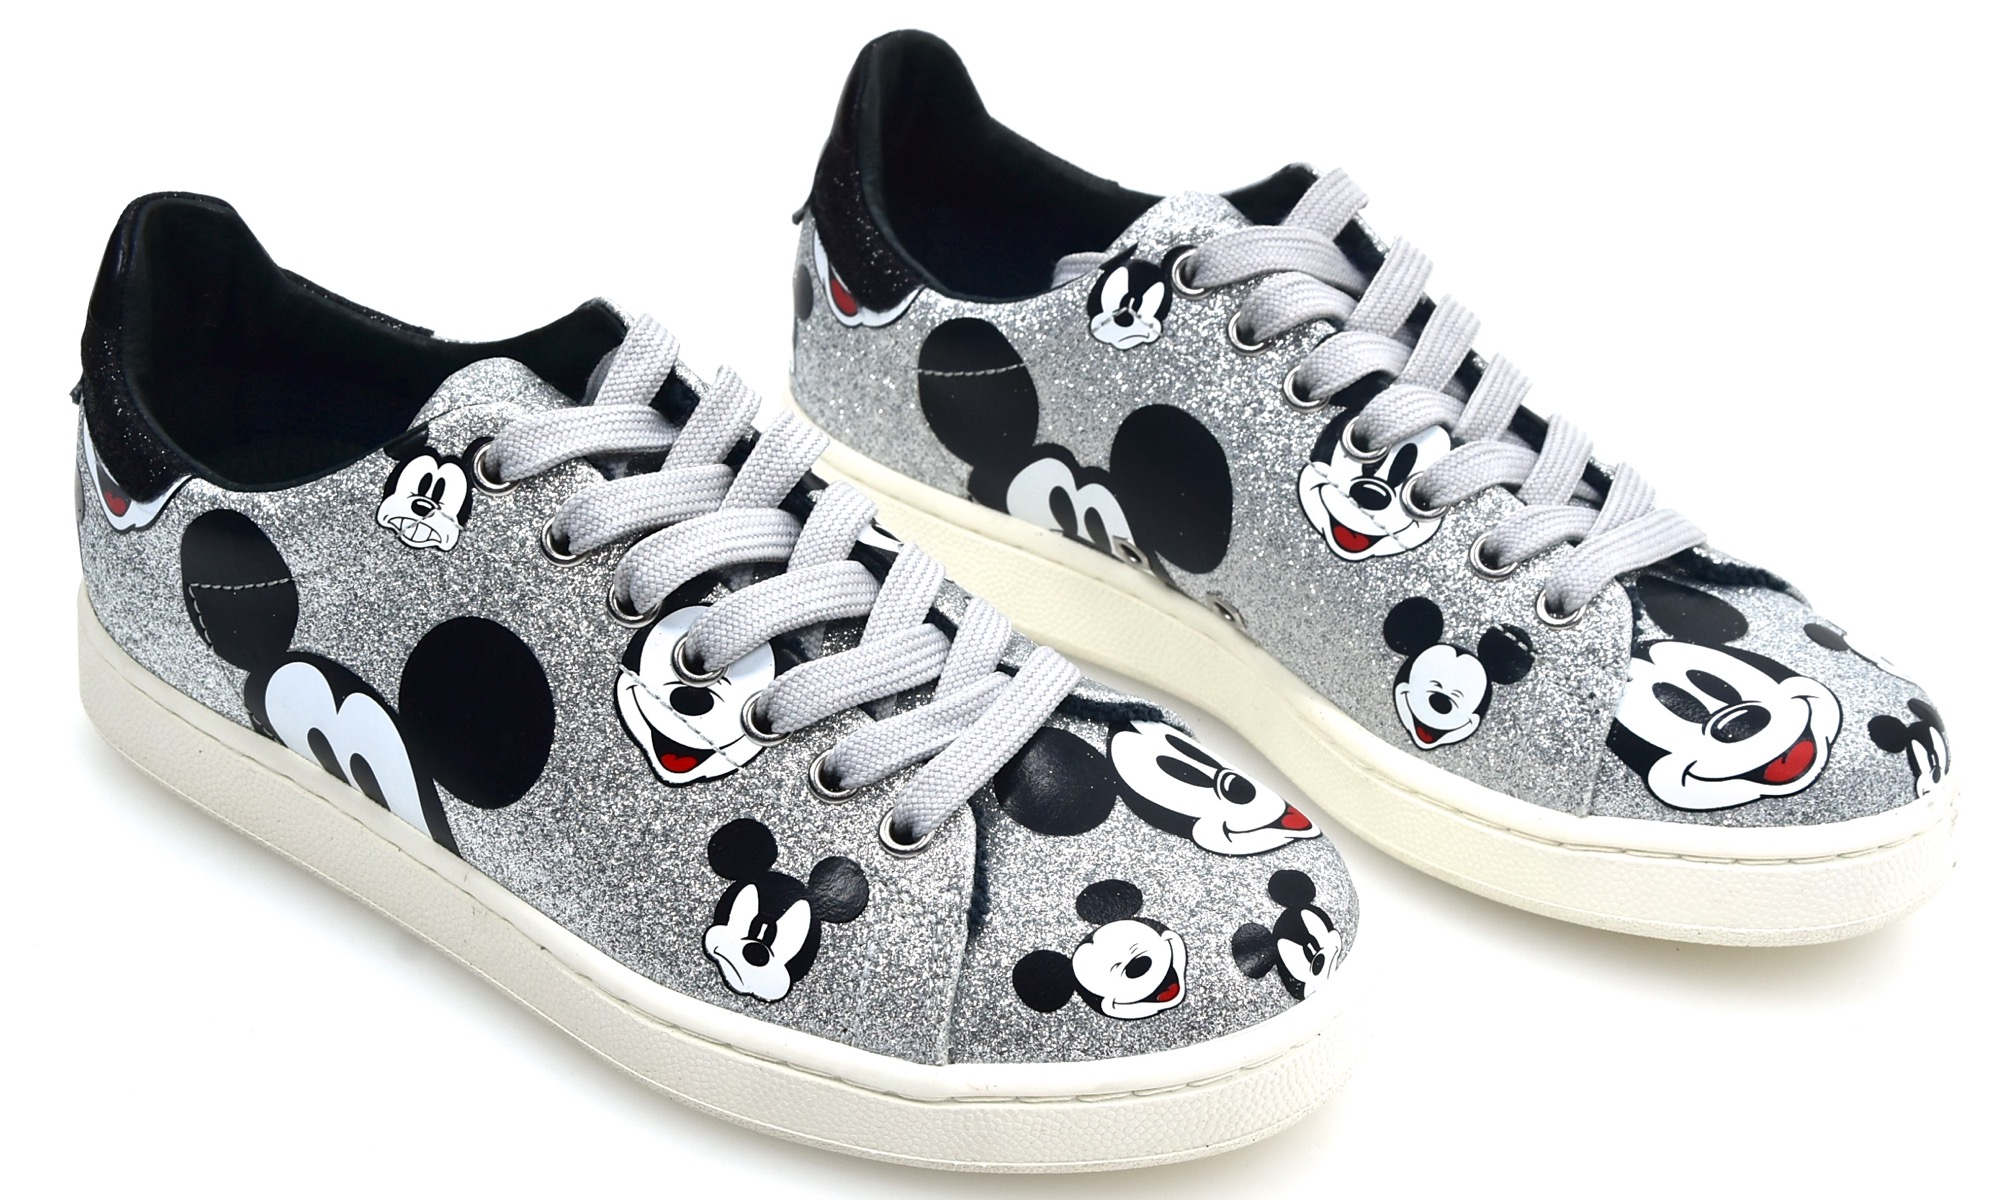 DISNEY MOA MASTER OF ARTS femmes femmes femmes SCARPA baskets CASUAL ART. MD62 M10P - MD85 M08B 9d1d14